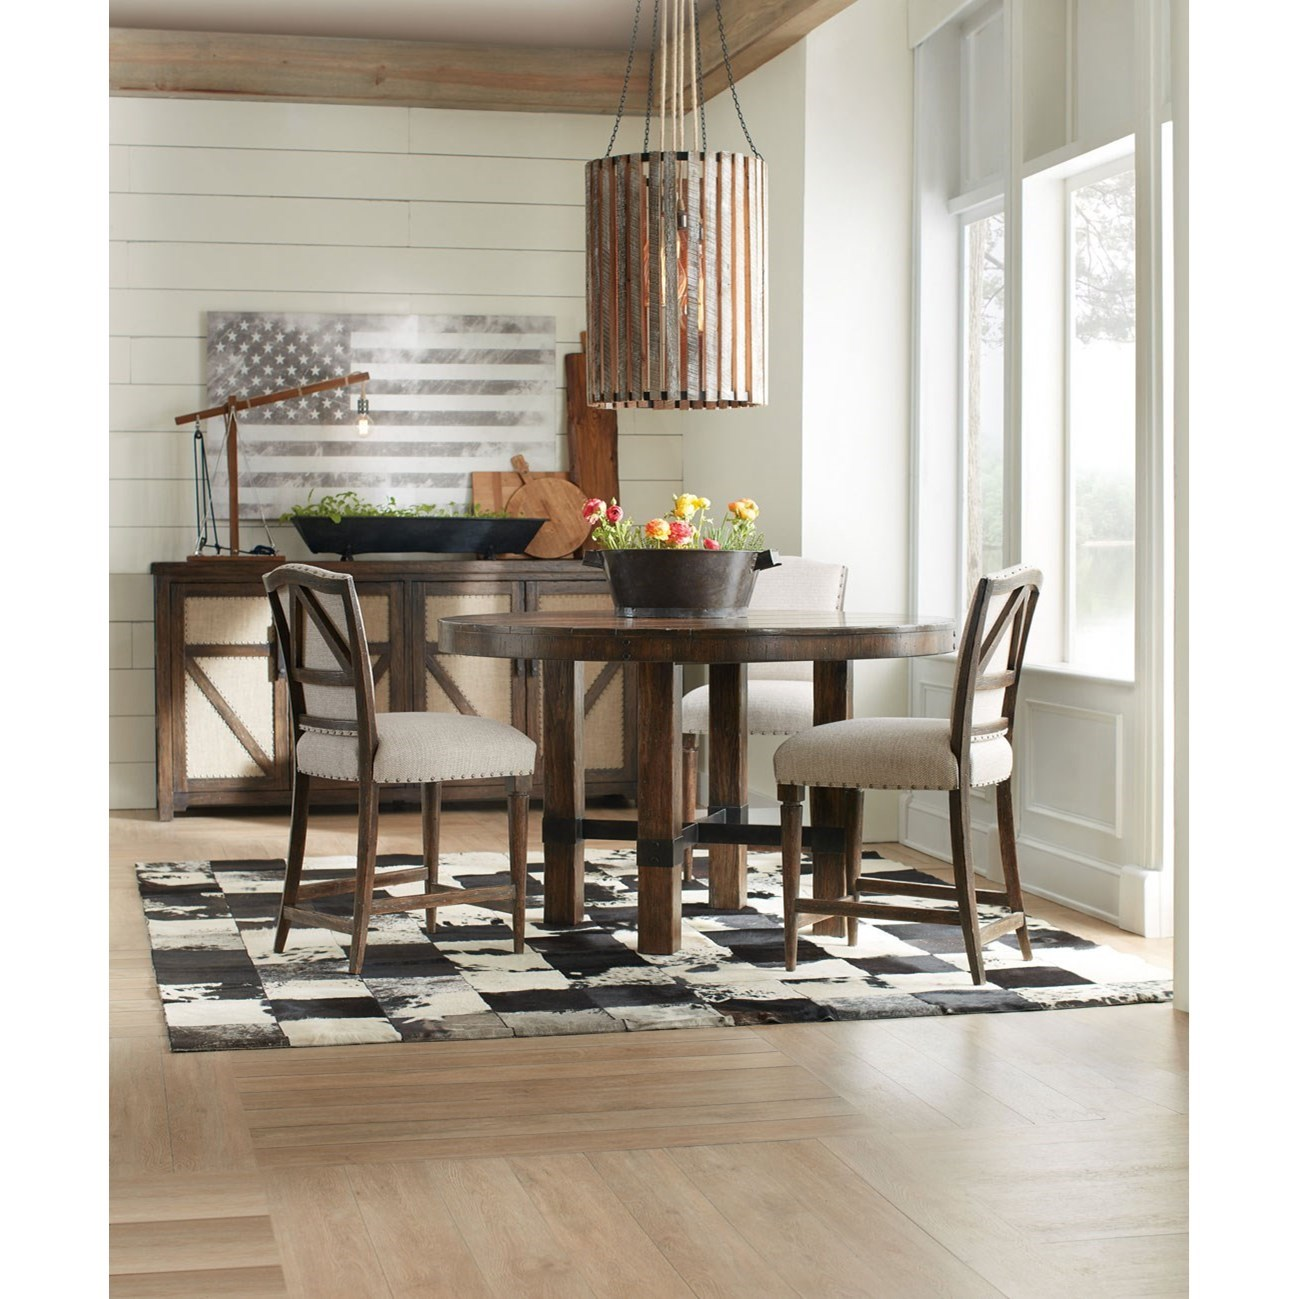 American Life - Roslyn County Round Dining Table and Counter Stool Set at Williams & Kay